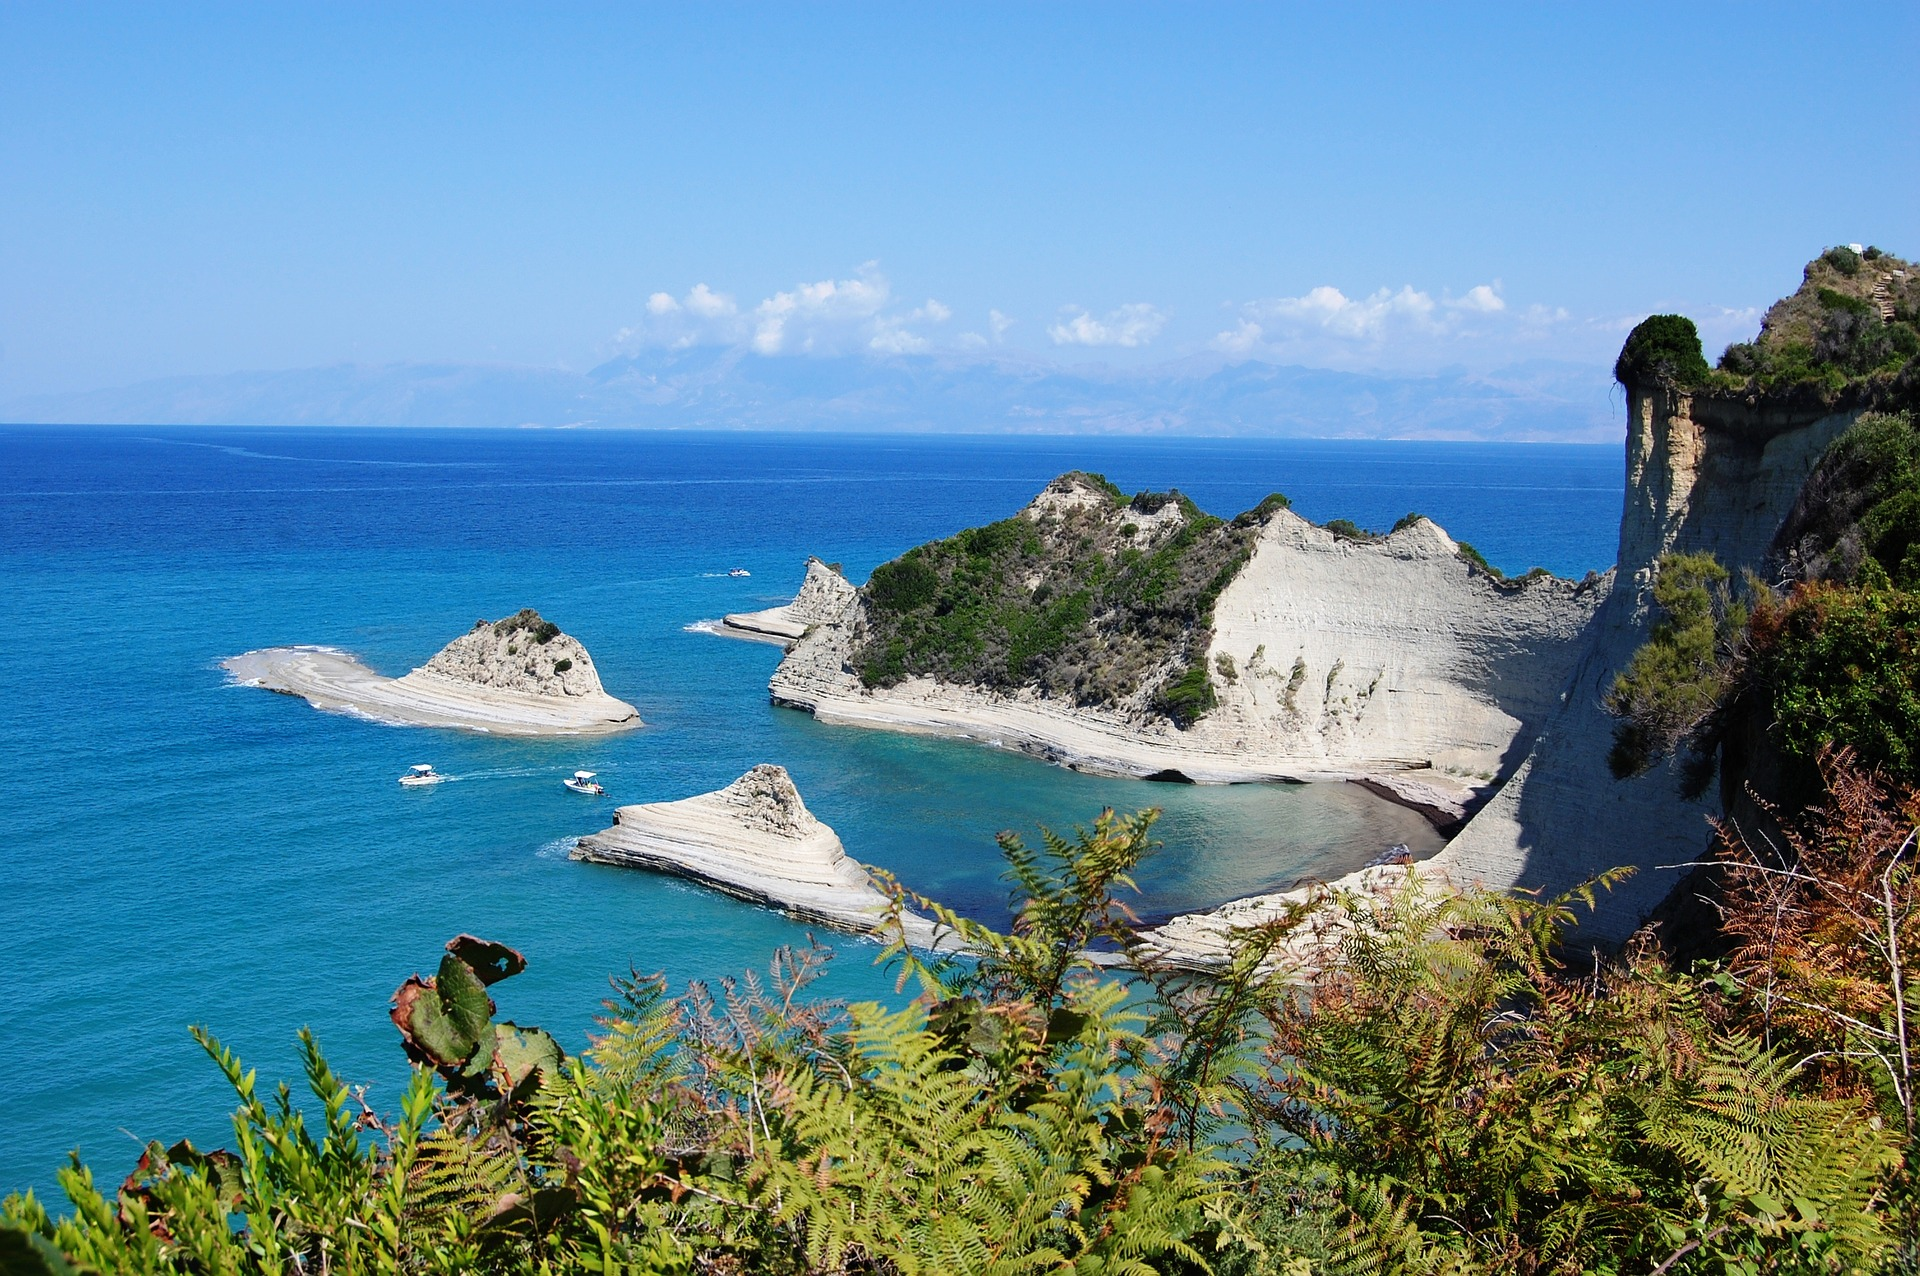 corfu cliffs blue sea